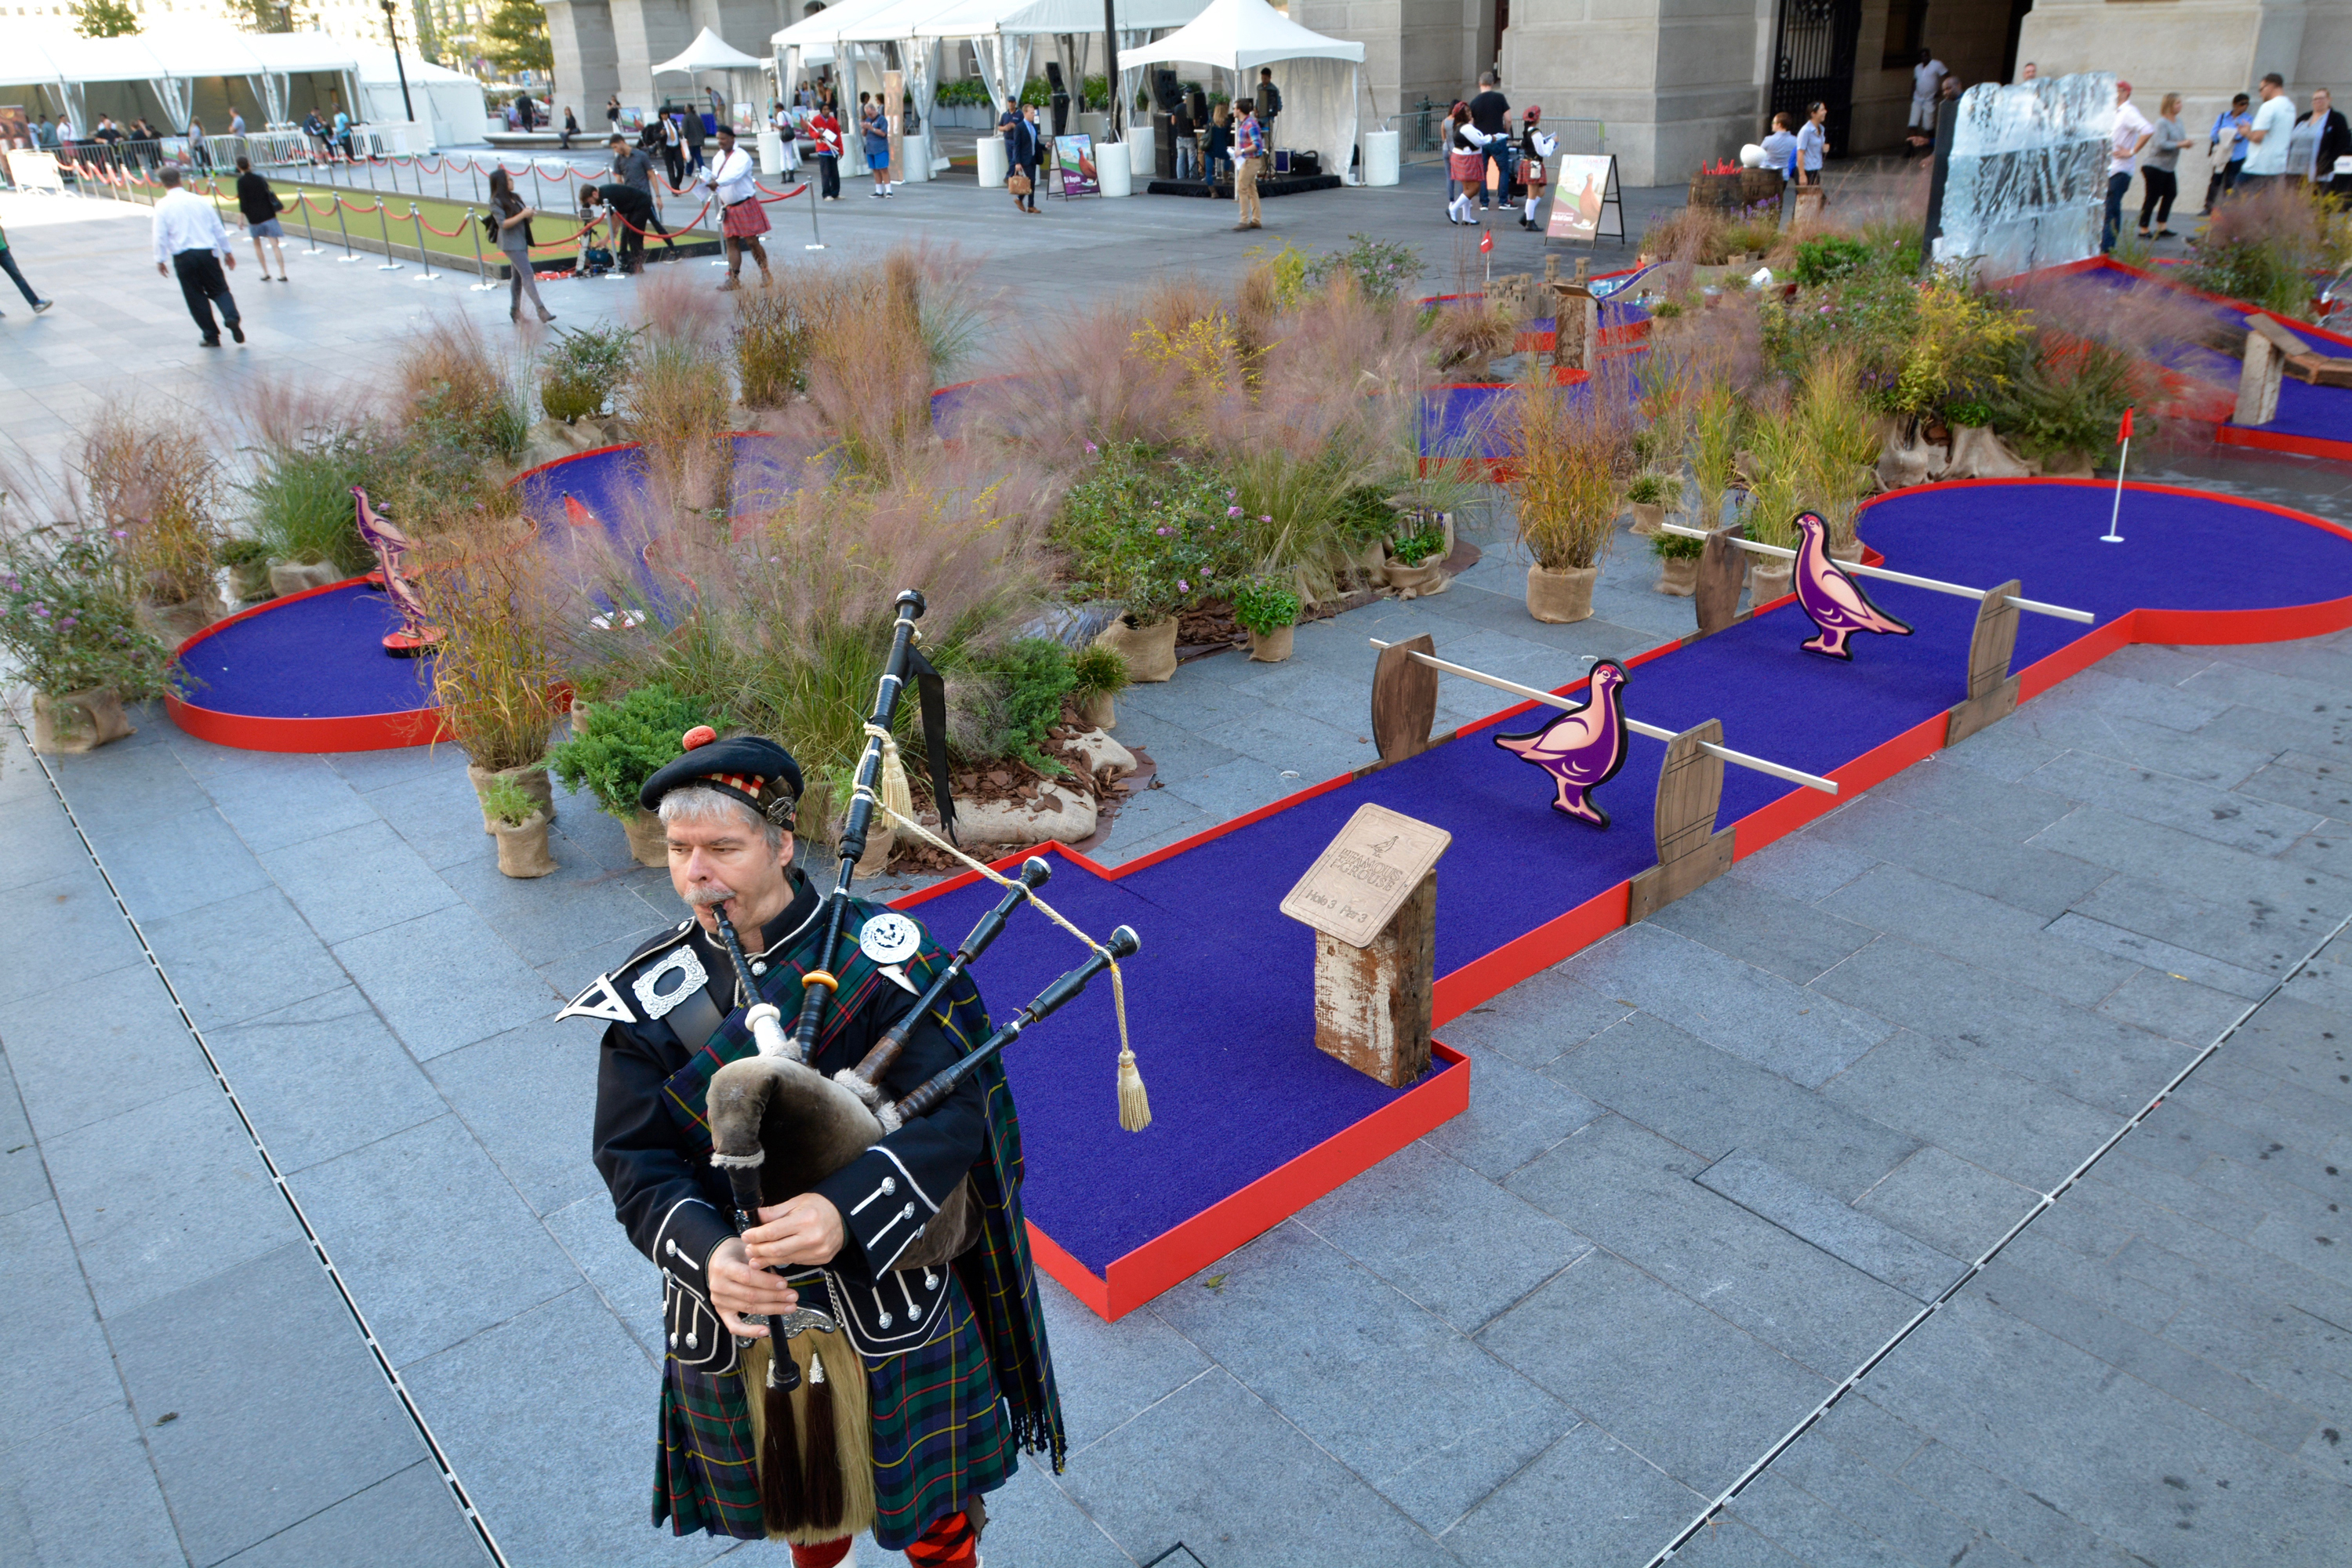 """Bagpiper Charles Rutan of Philadelphia plays the pipes next to a miniature golf course set up as part of """"the world's largest putting green"""" event at Dilworth Park at City Hall Tuesday. A 104 foot and 2 inch putting green  at Dilworth at which former Eagle Hollis Thomas helped set a Guinness World Record was part of the event. The event was sponsored by The Famous Grouse, Scotland's number one Scotch. (Photo: Mark C. Psoras)"""